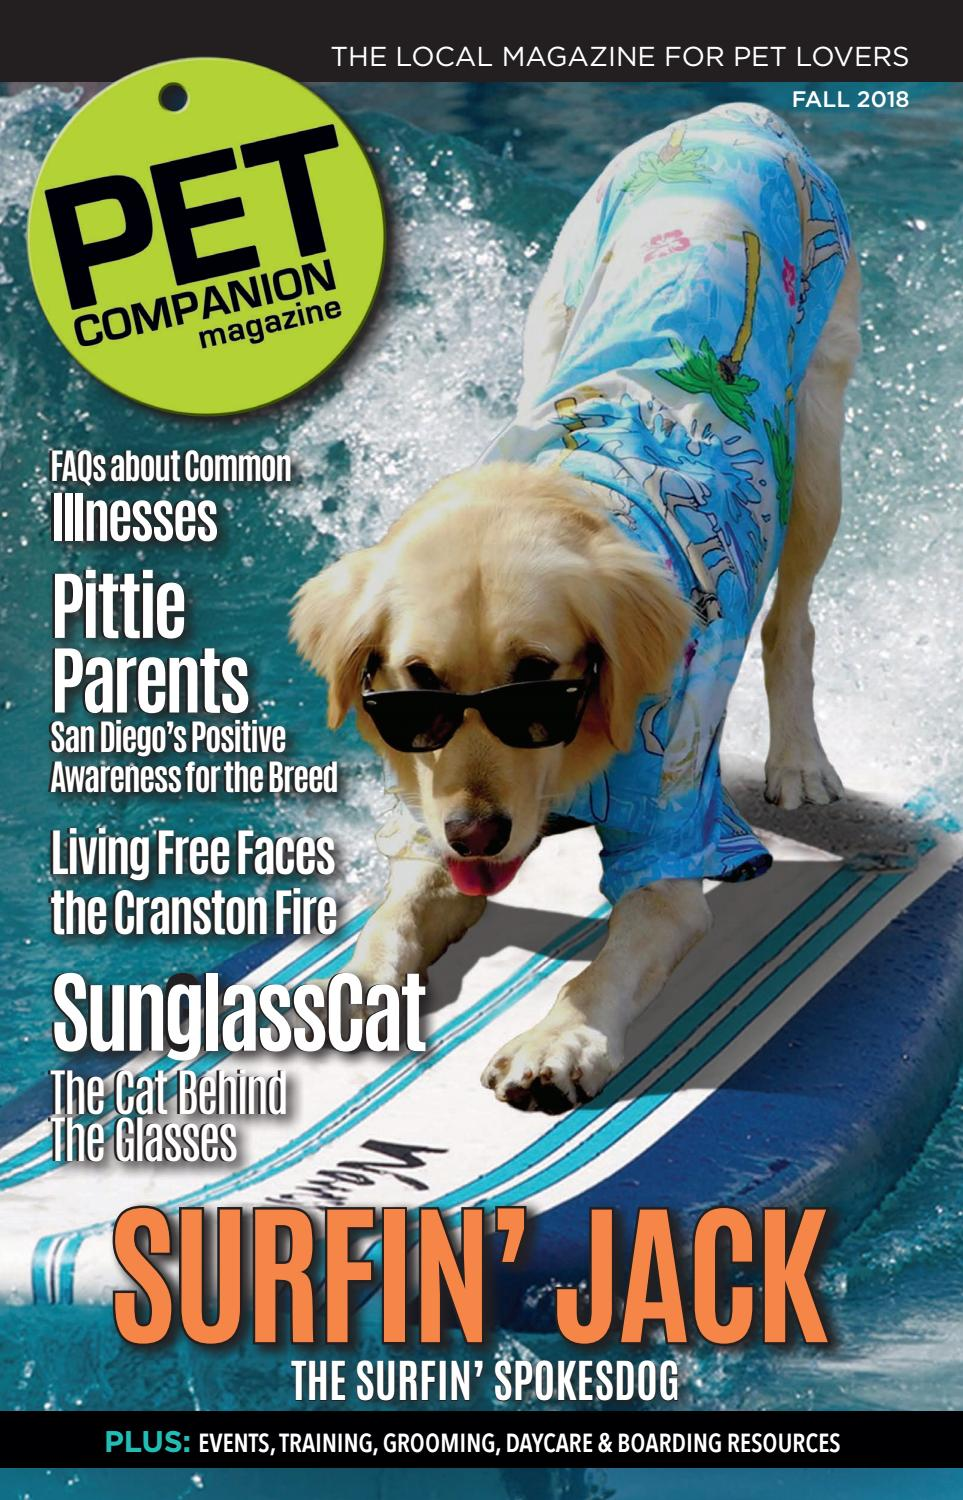 Pet Companion Magazine, Fall 2018